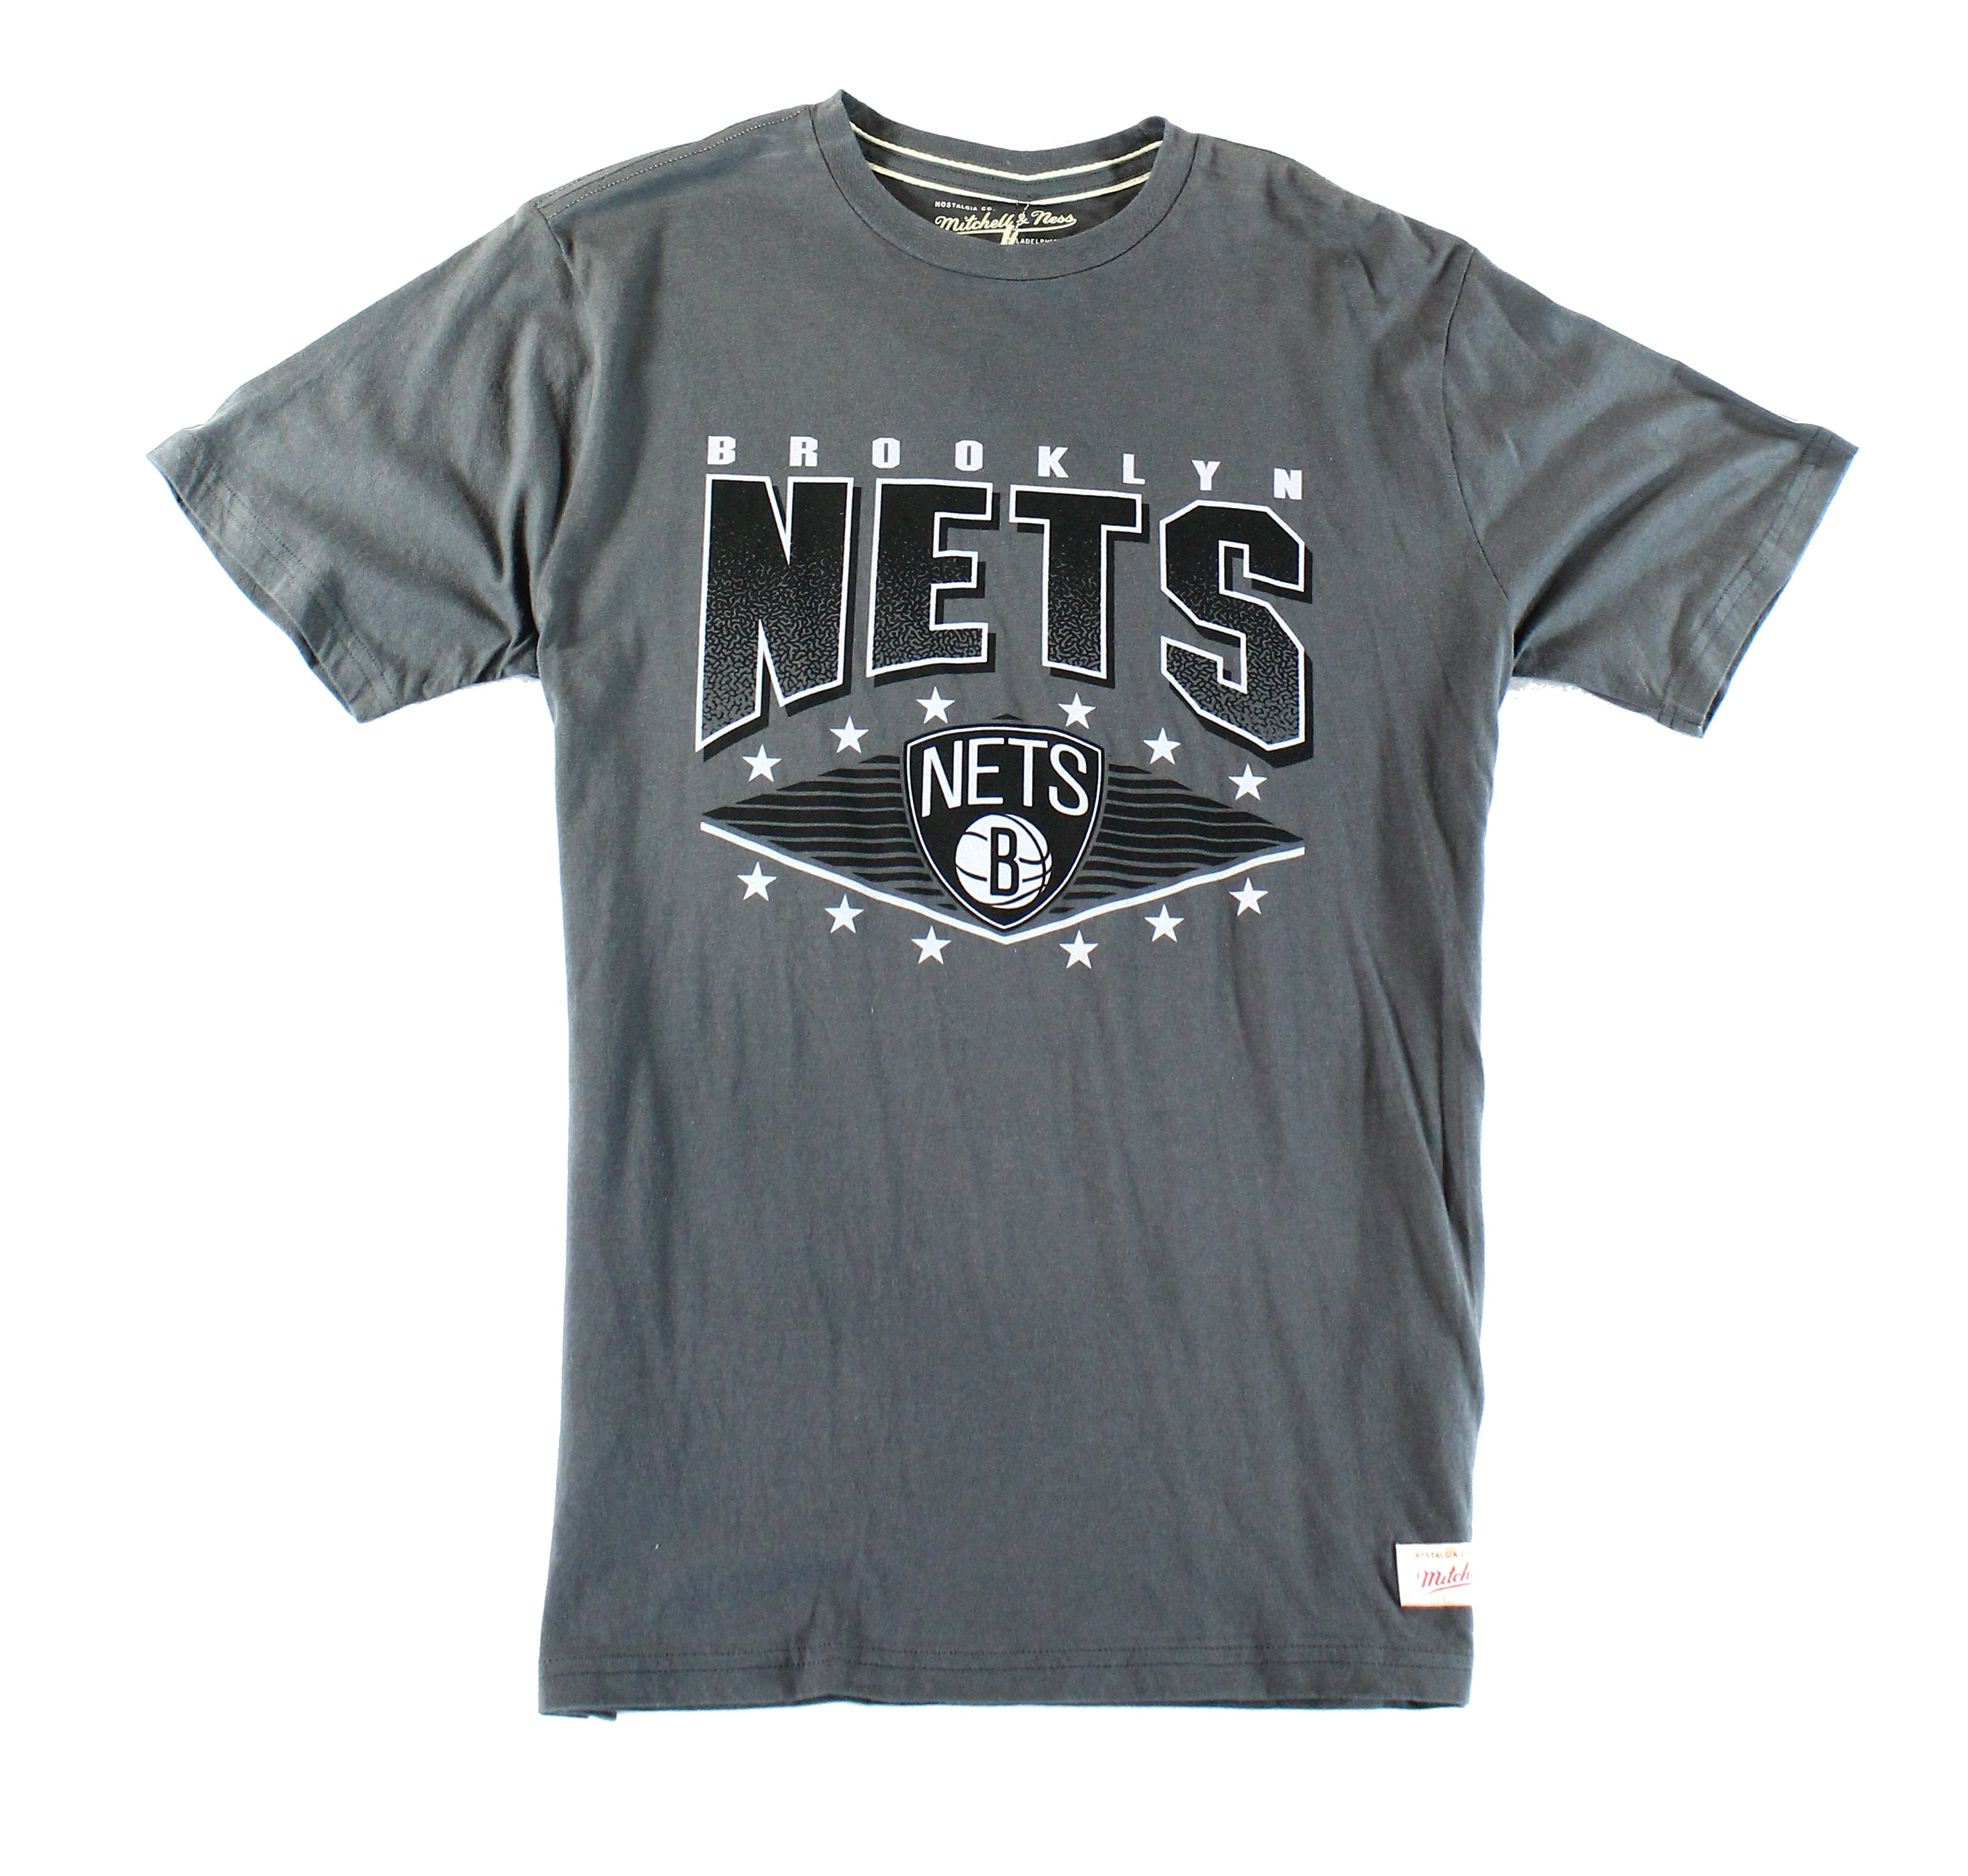 Mitchell & Ness NEW Gray Mens Small S Brooklyn Nets Graphic Tee T-Shirt